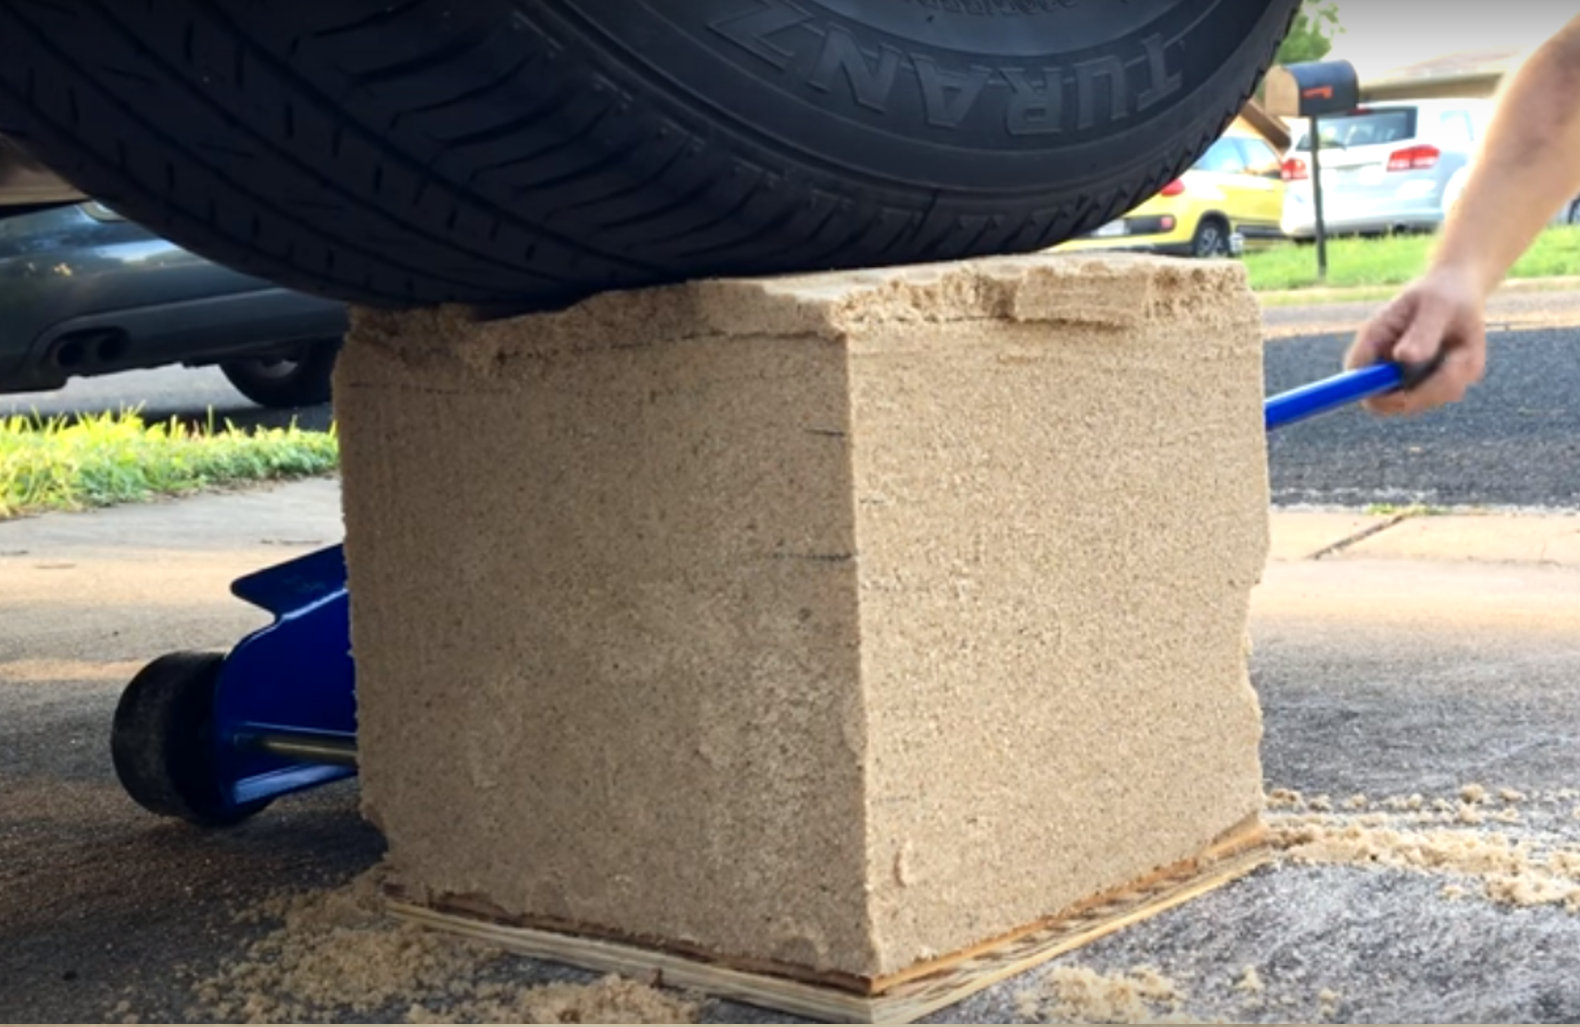 Sustainable Building Products sustainable building materials | inhabitat - green design